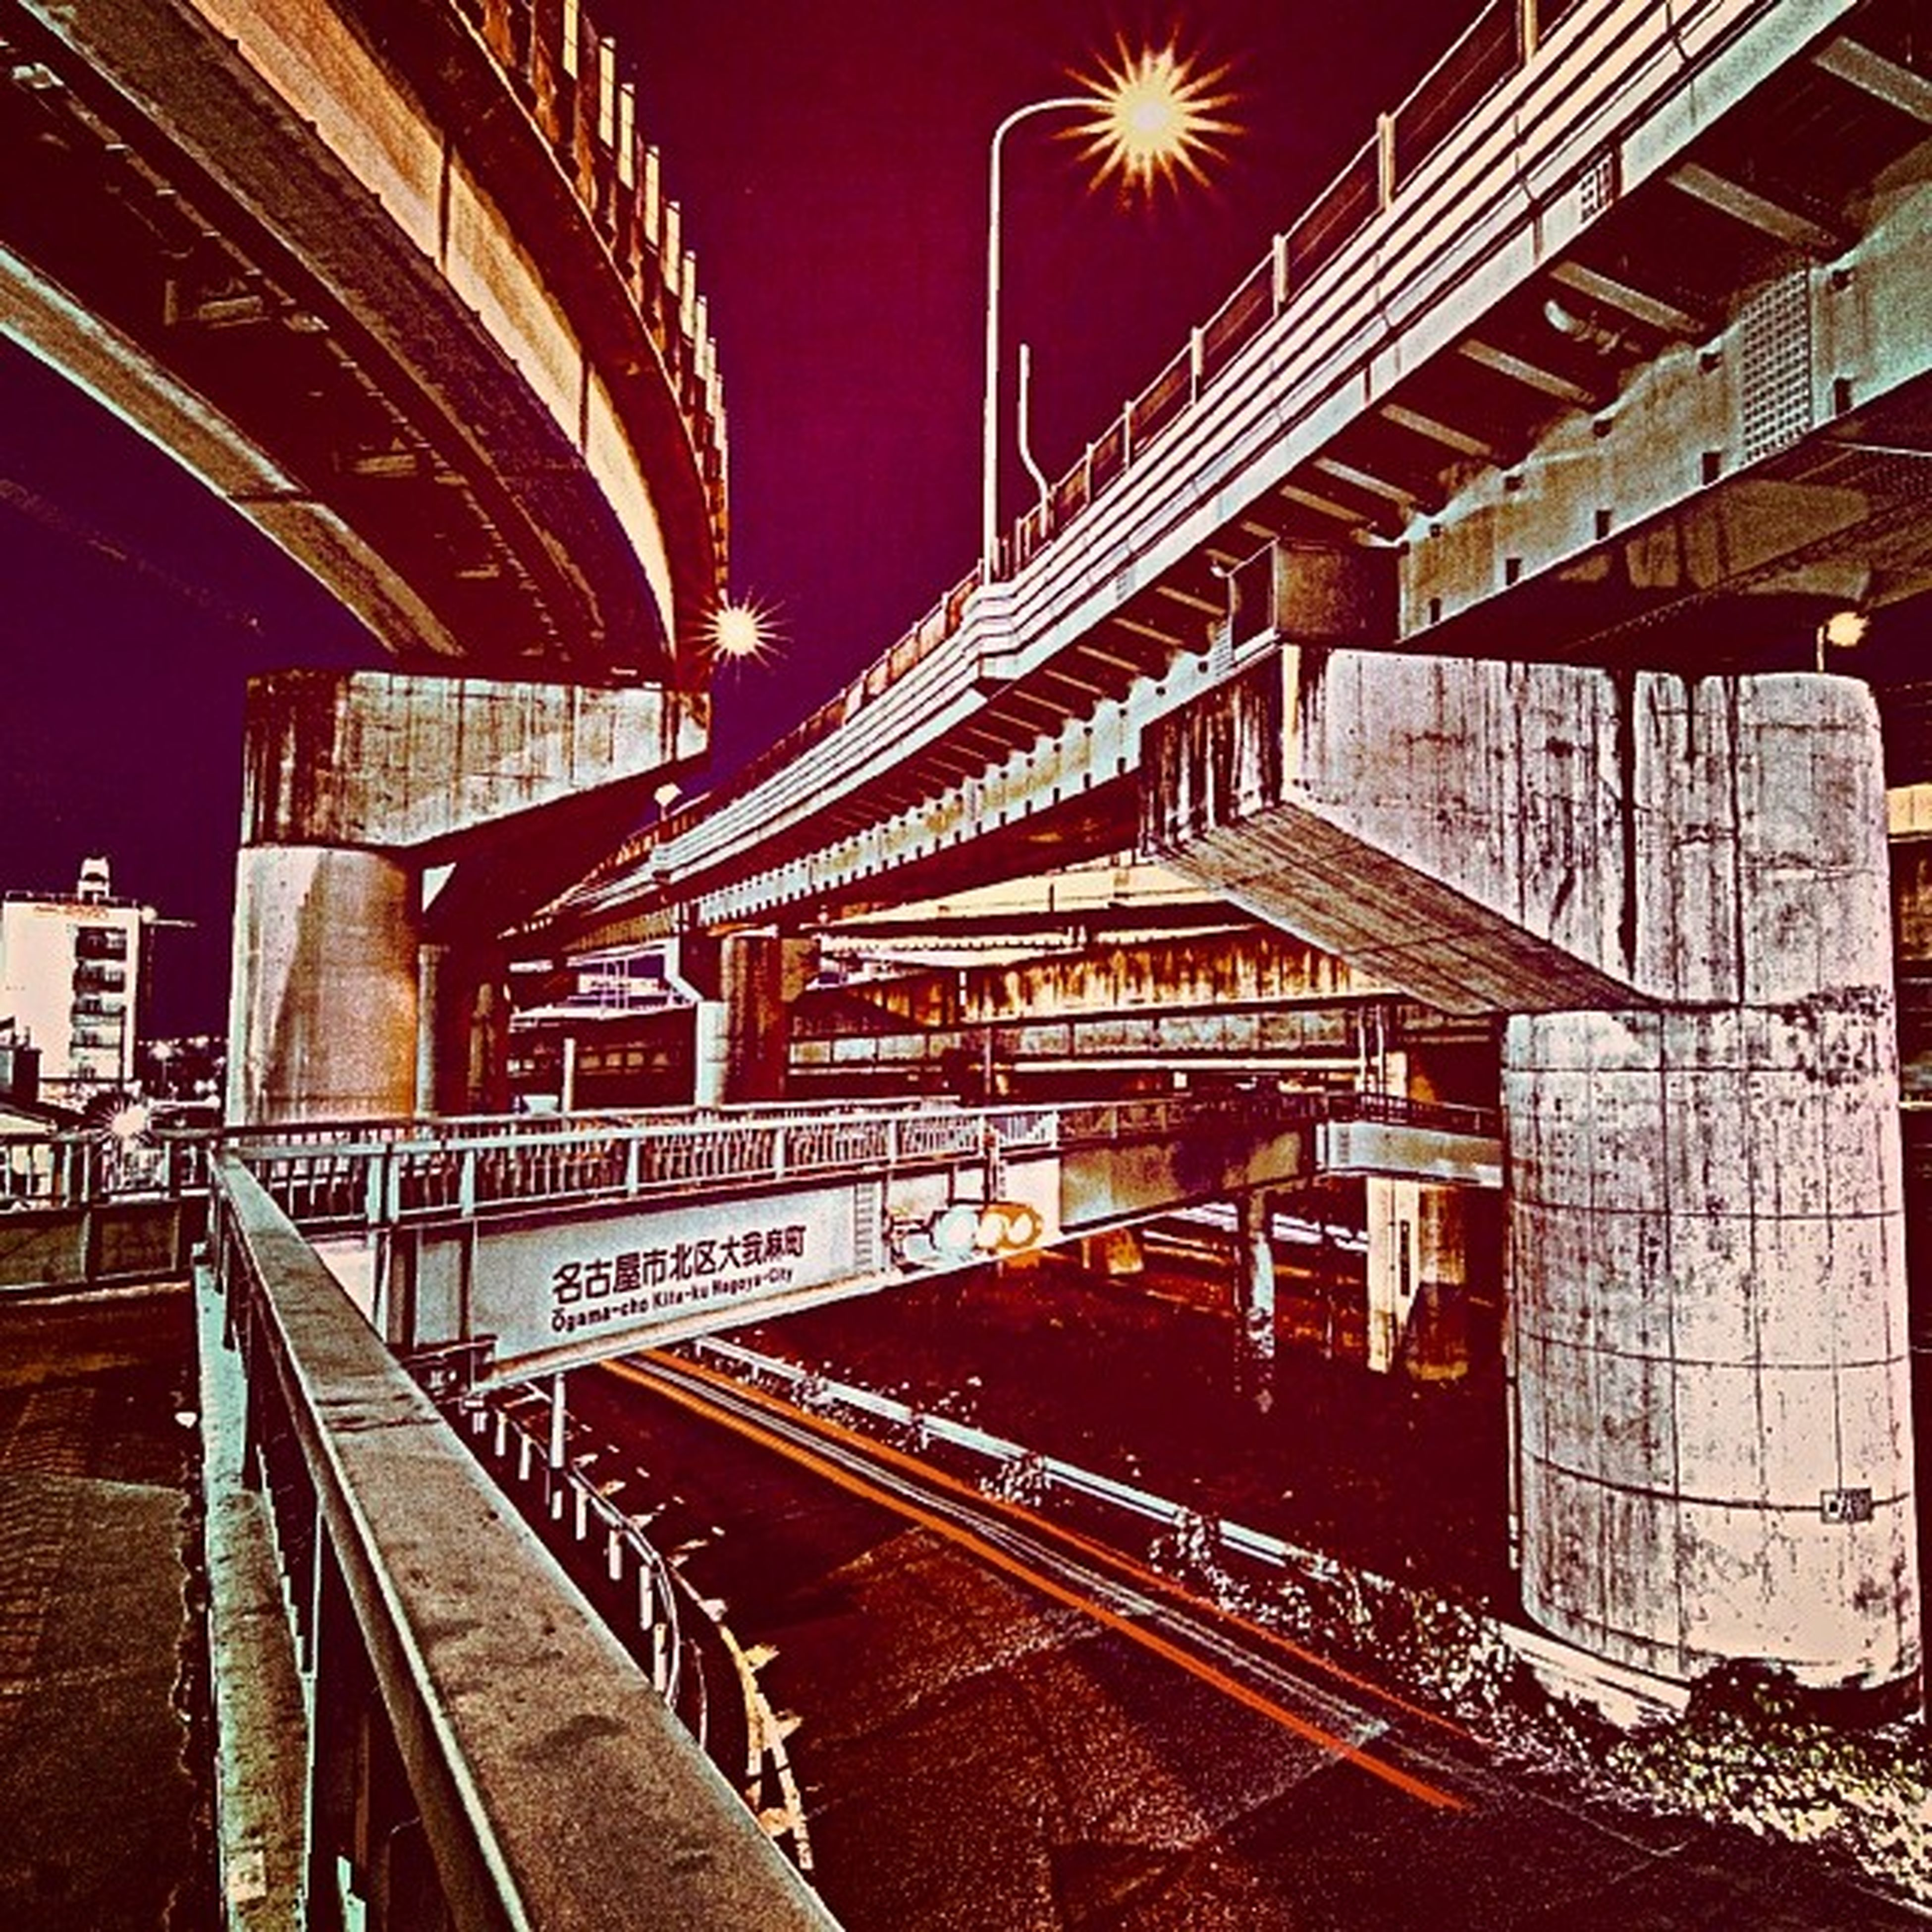 railroad track, illuminated, built structure, architecture, rail transportation, night, transportation, railroad station, the way forward, building exterior, public transportation, railroad station platform, diminishing perspective, lighting equipment, no people, connection, railing, outdoors, train - vehicle, long